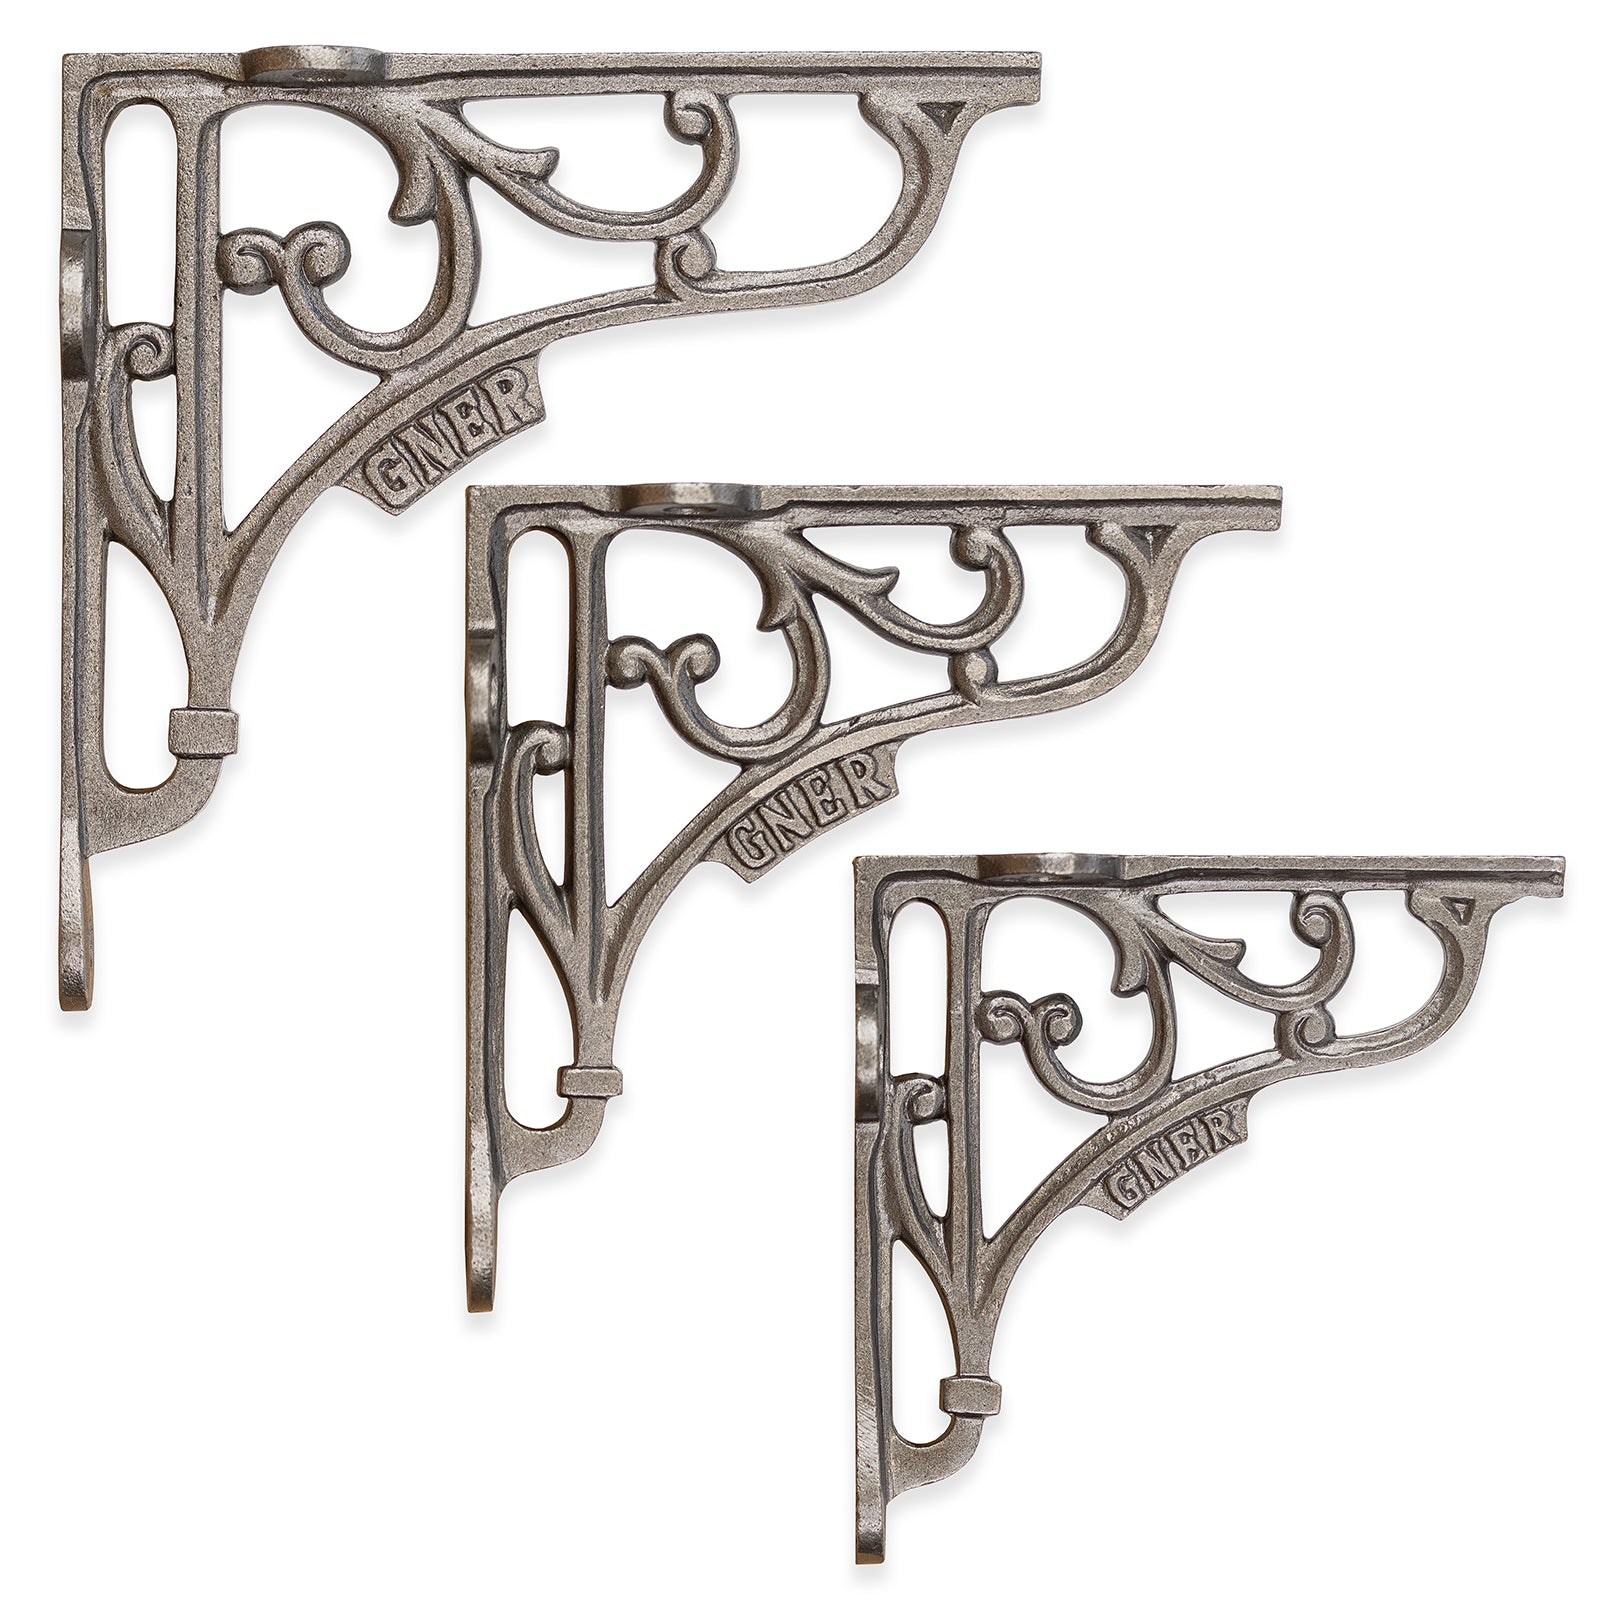 GNER Cast Iron Shelf Brackets